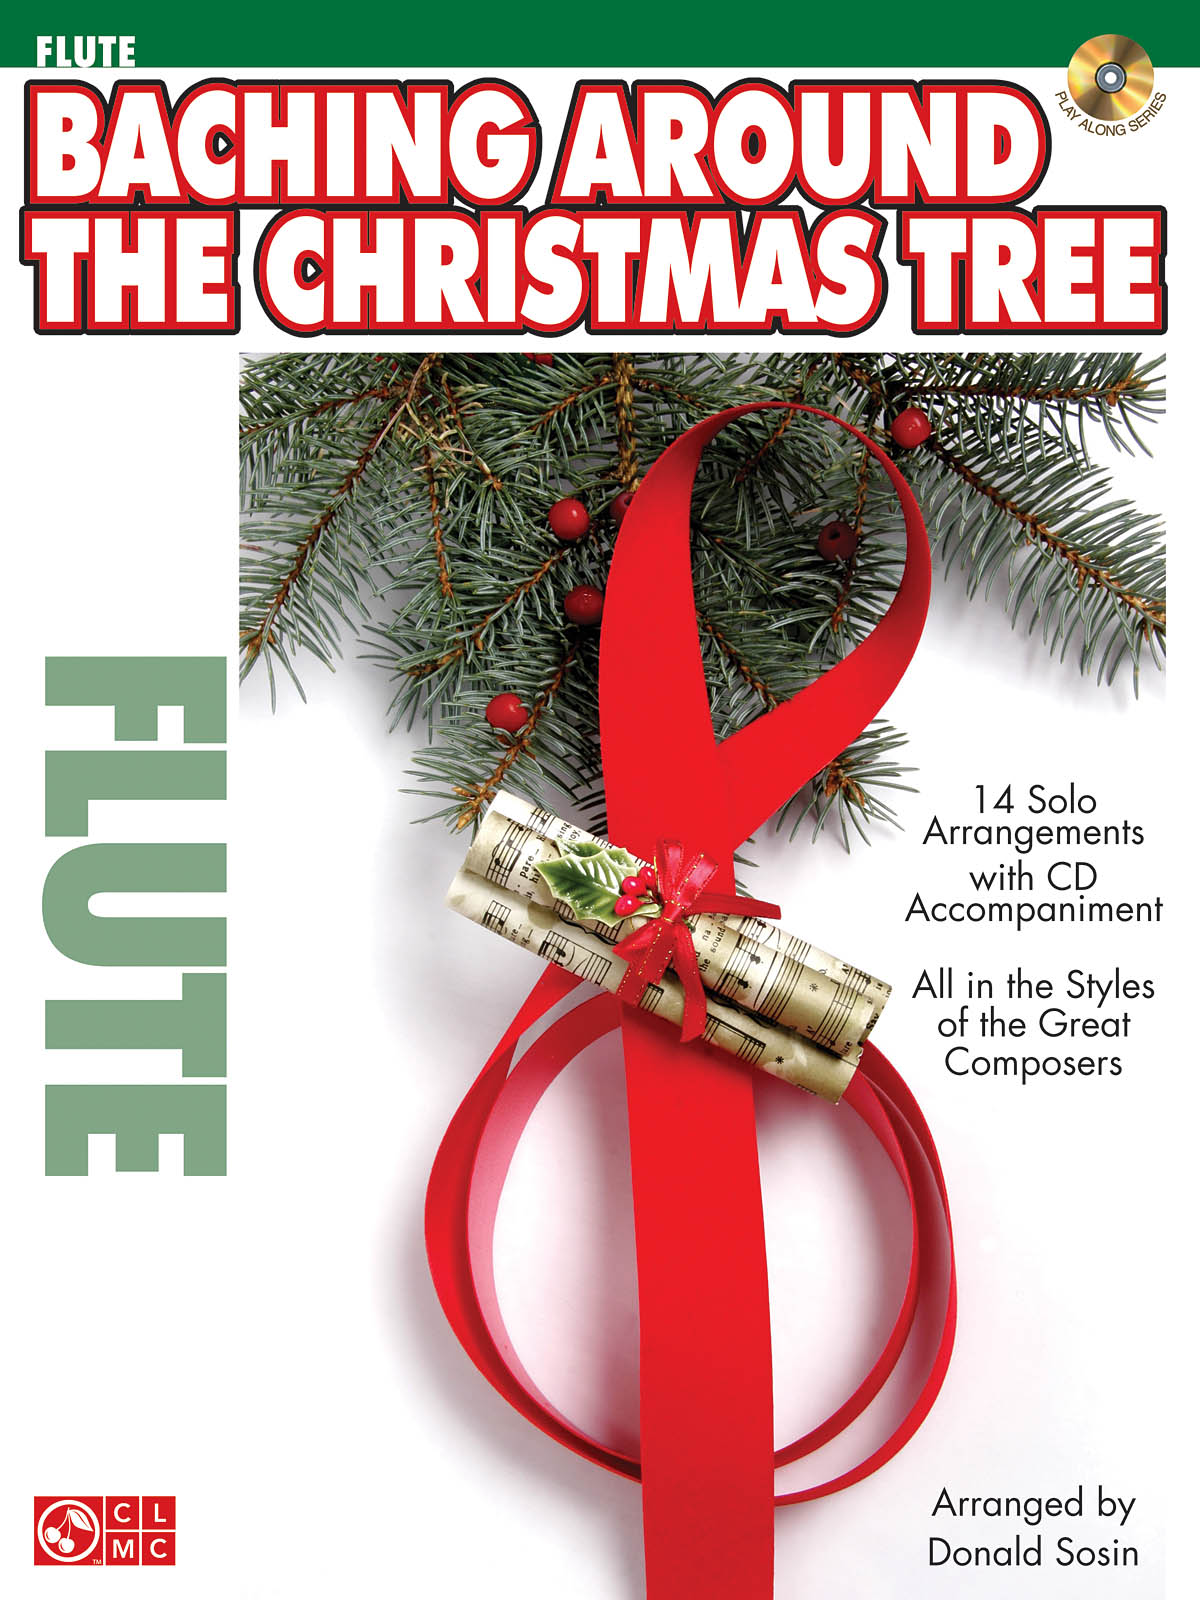 Baching Around the Christmas Tree - Flute: Flute Solo: Backing Tracks